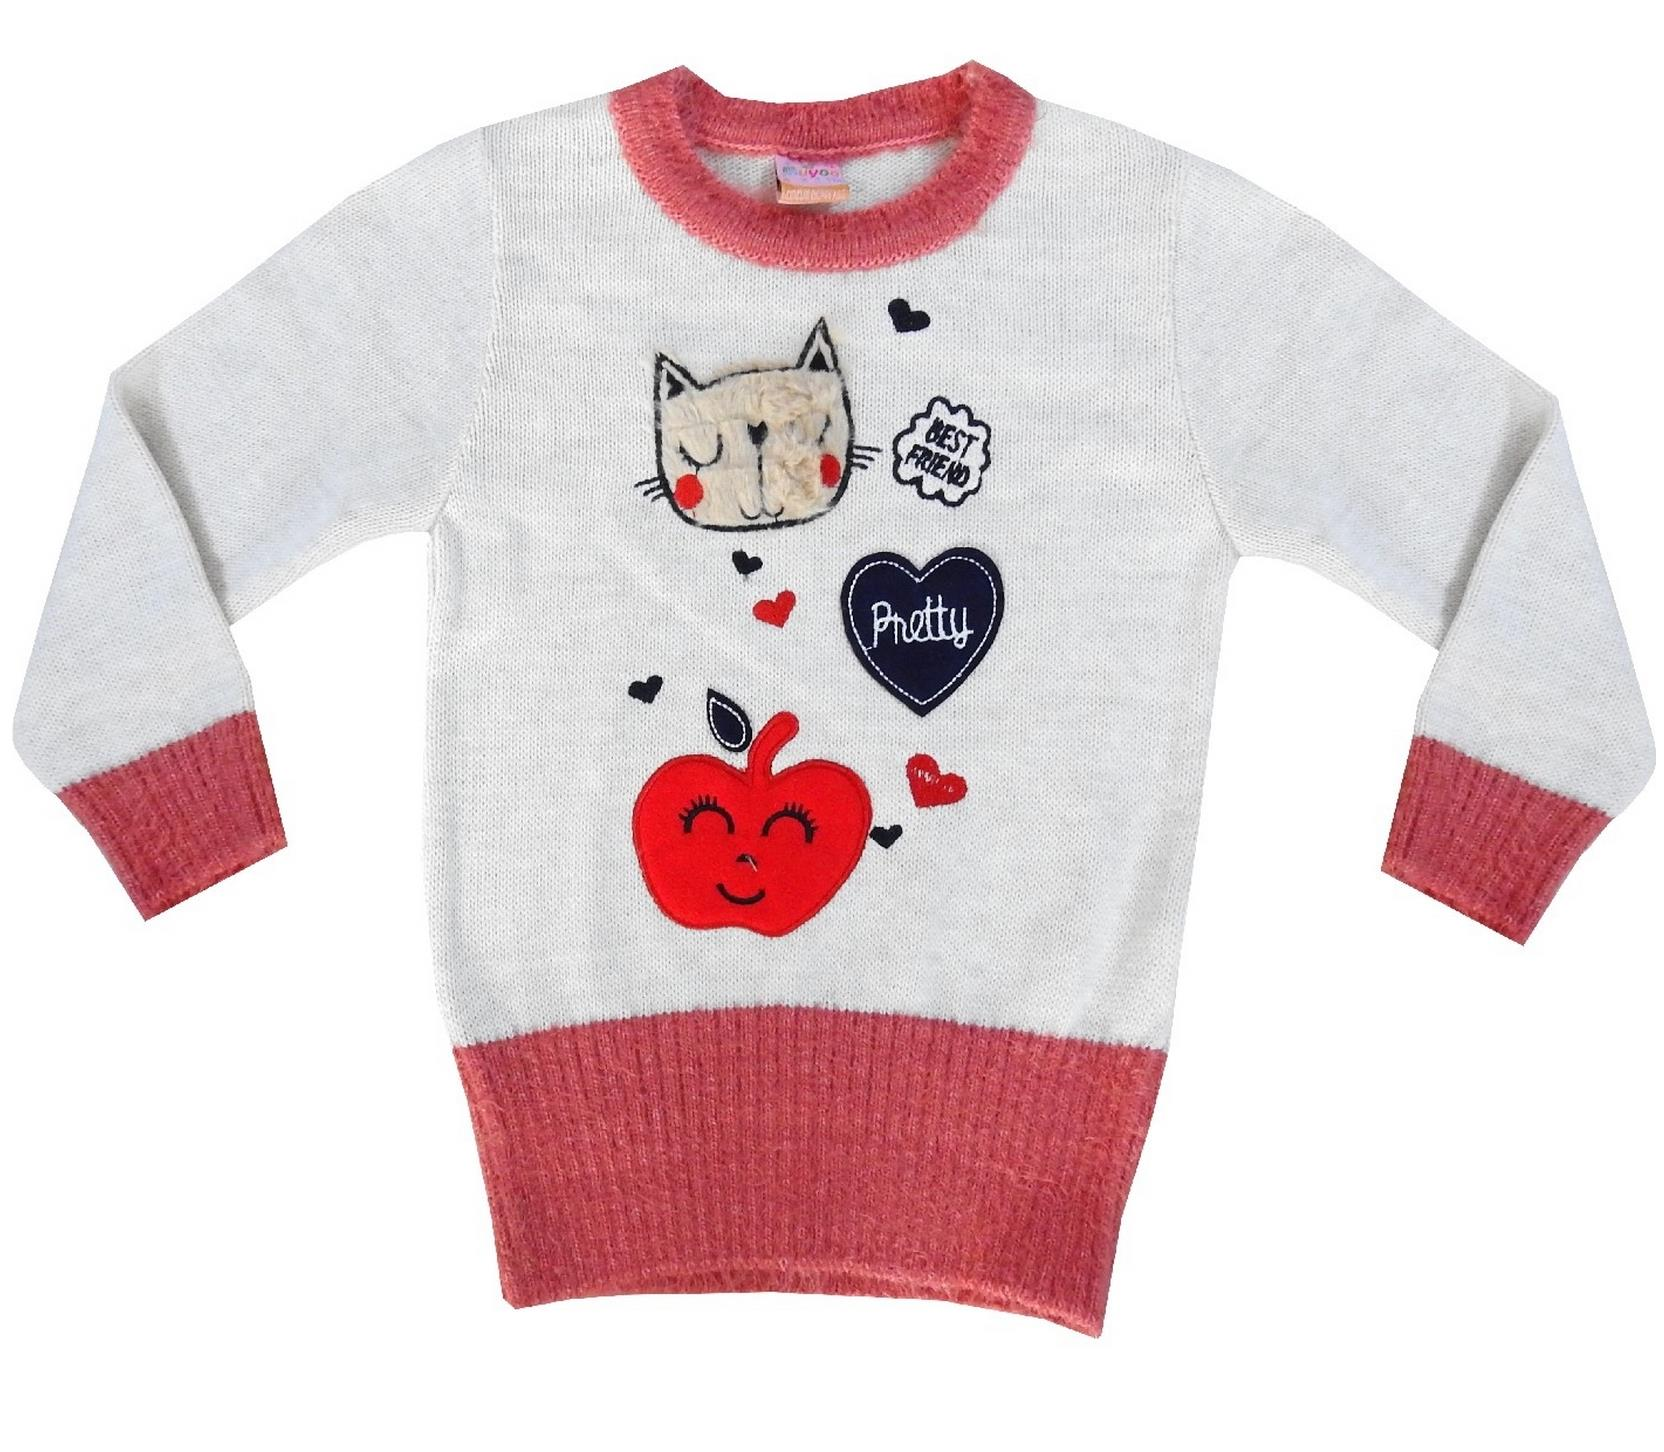 '' BEST FRIEND '' & '' PRETTY '' PRINTED DESIGN SWEATER FOR GIRL (4-6-8-10 AGE)